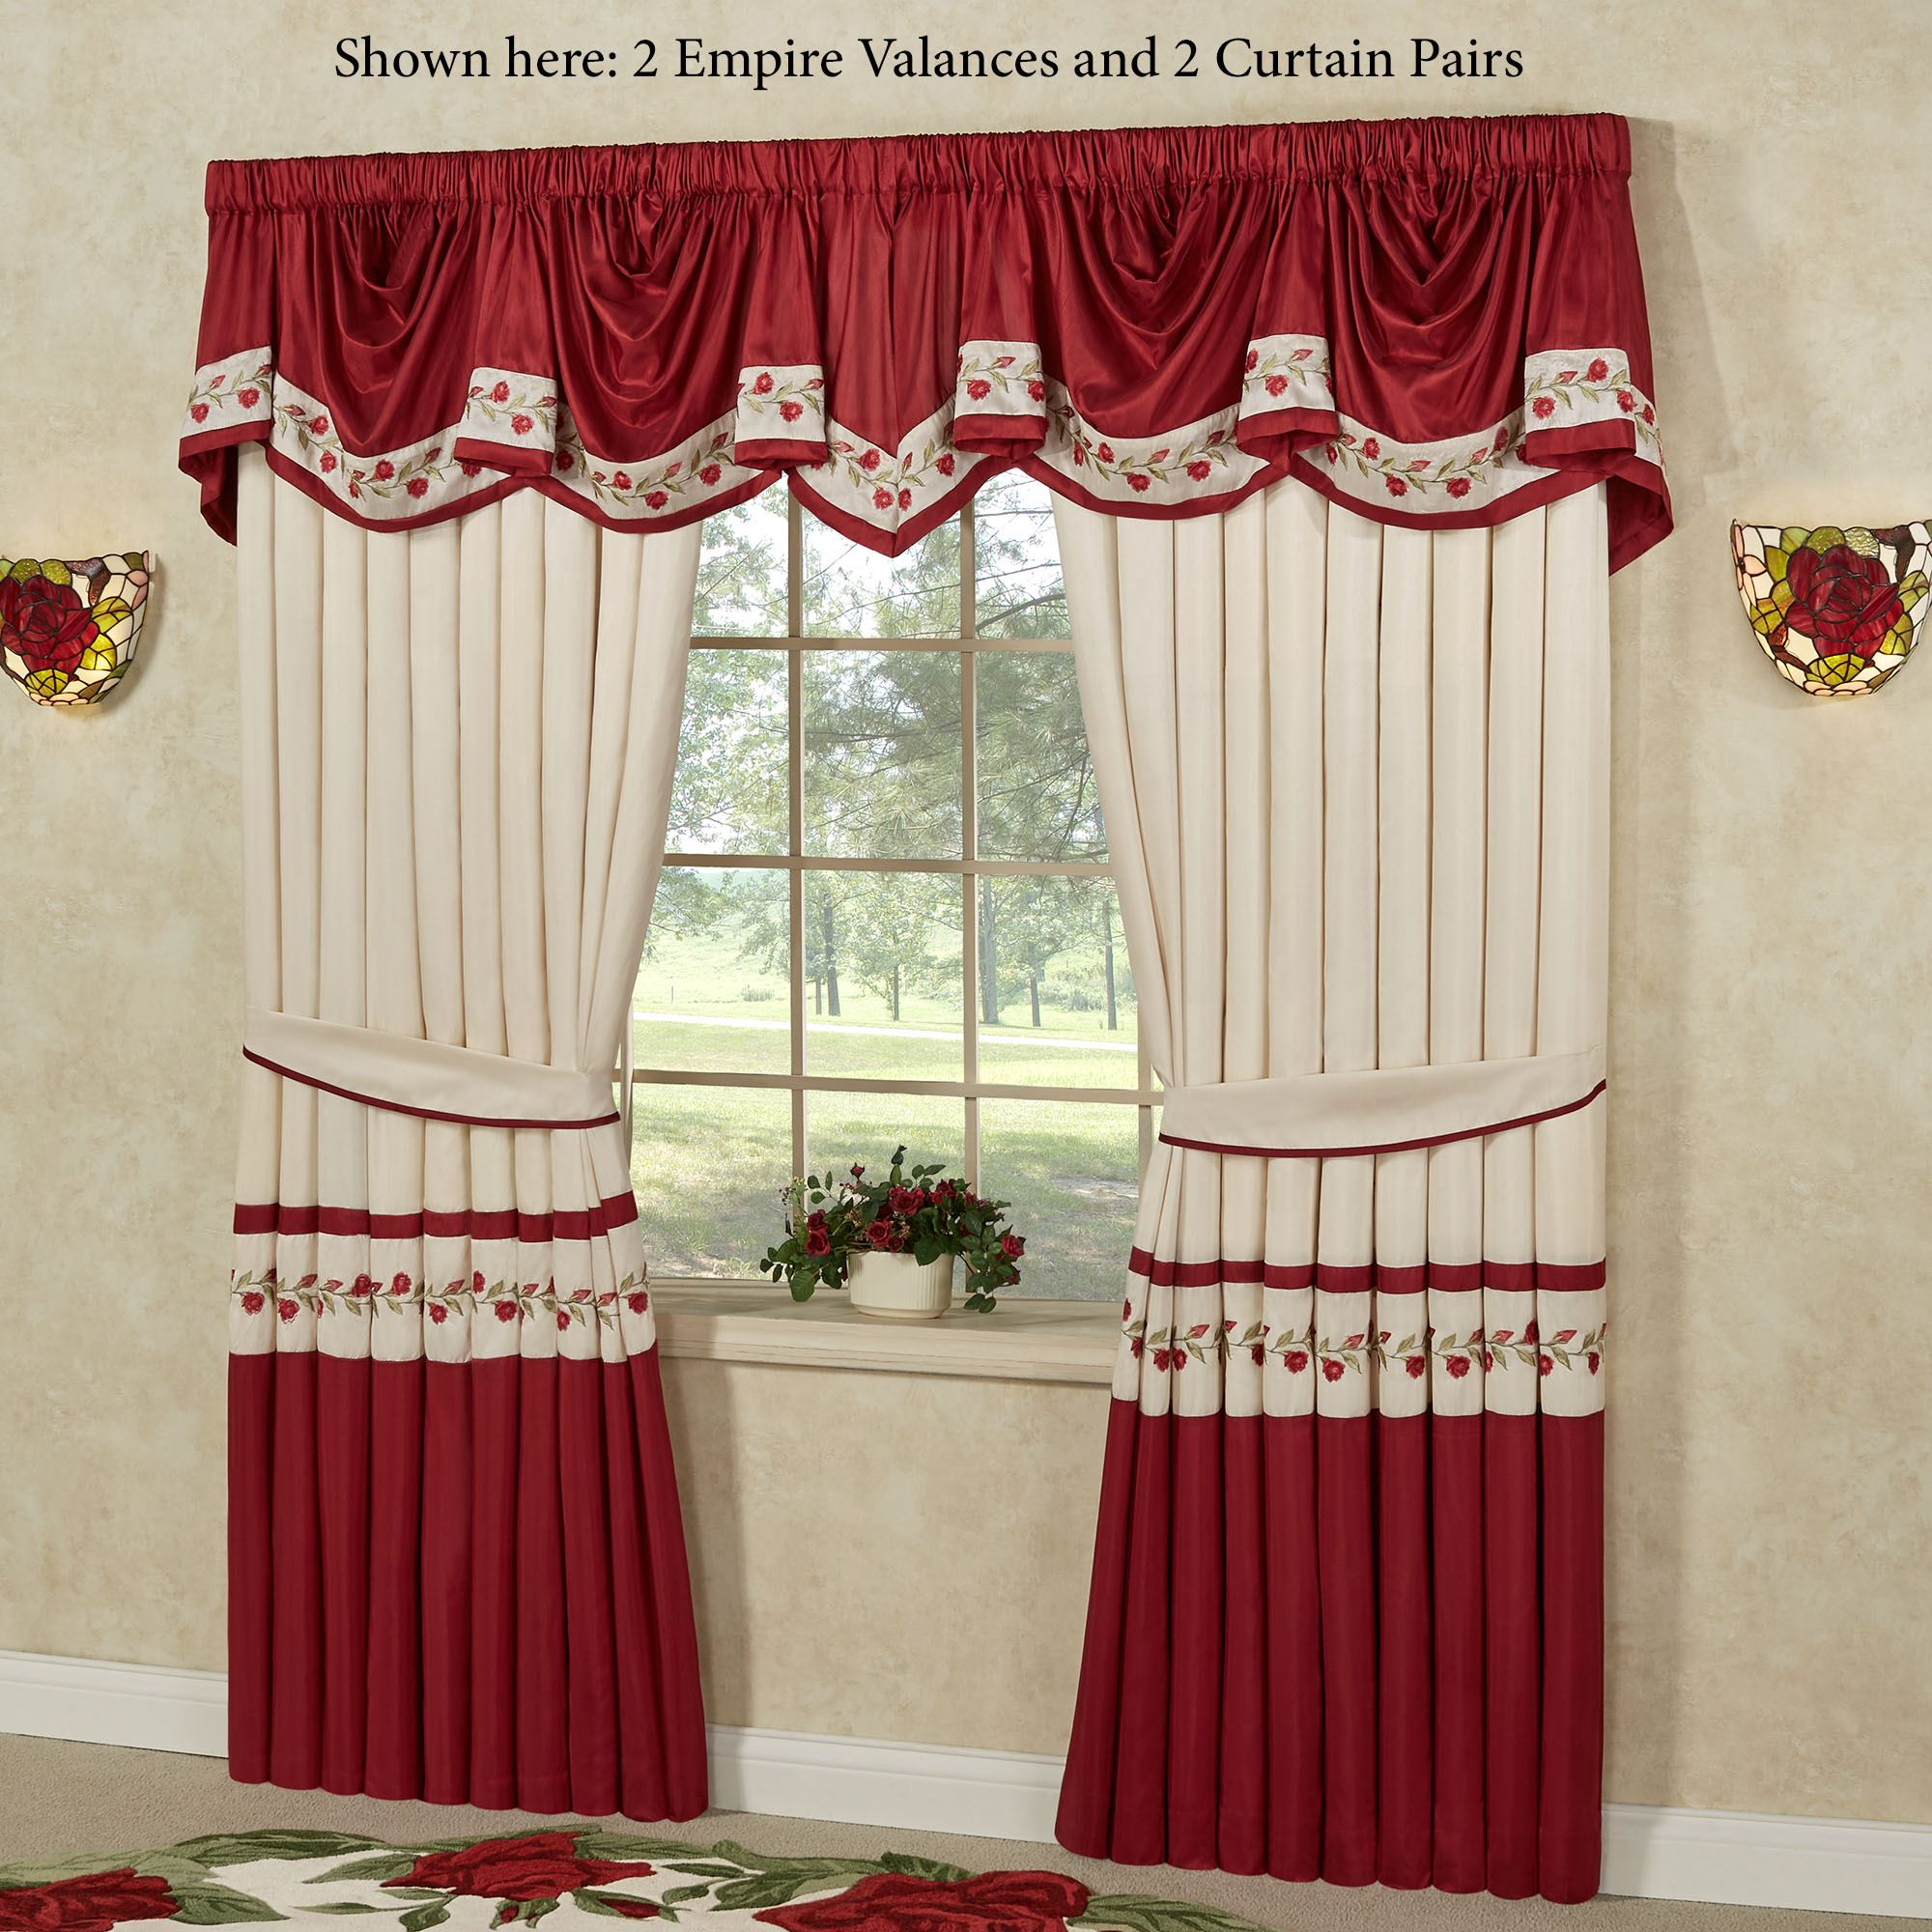 Valances Window Treatments Play Video · Briar Rose Empire Window Valance ...